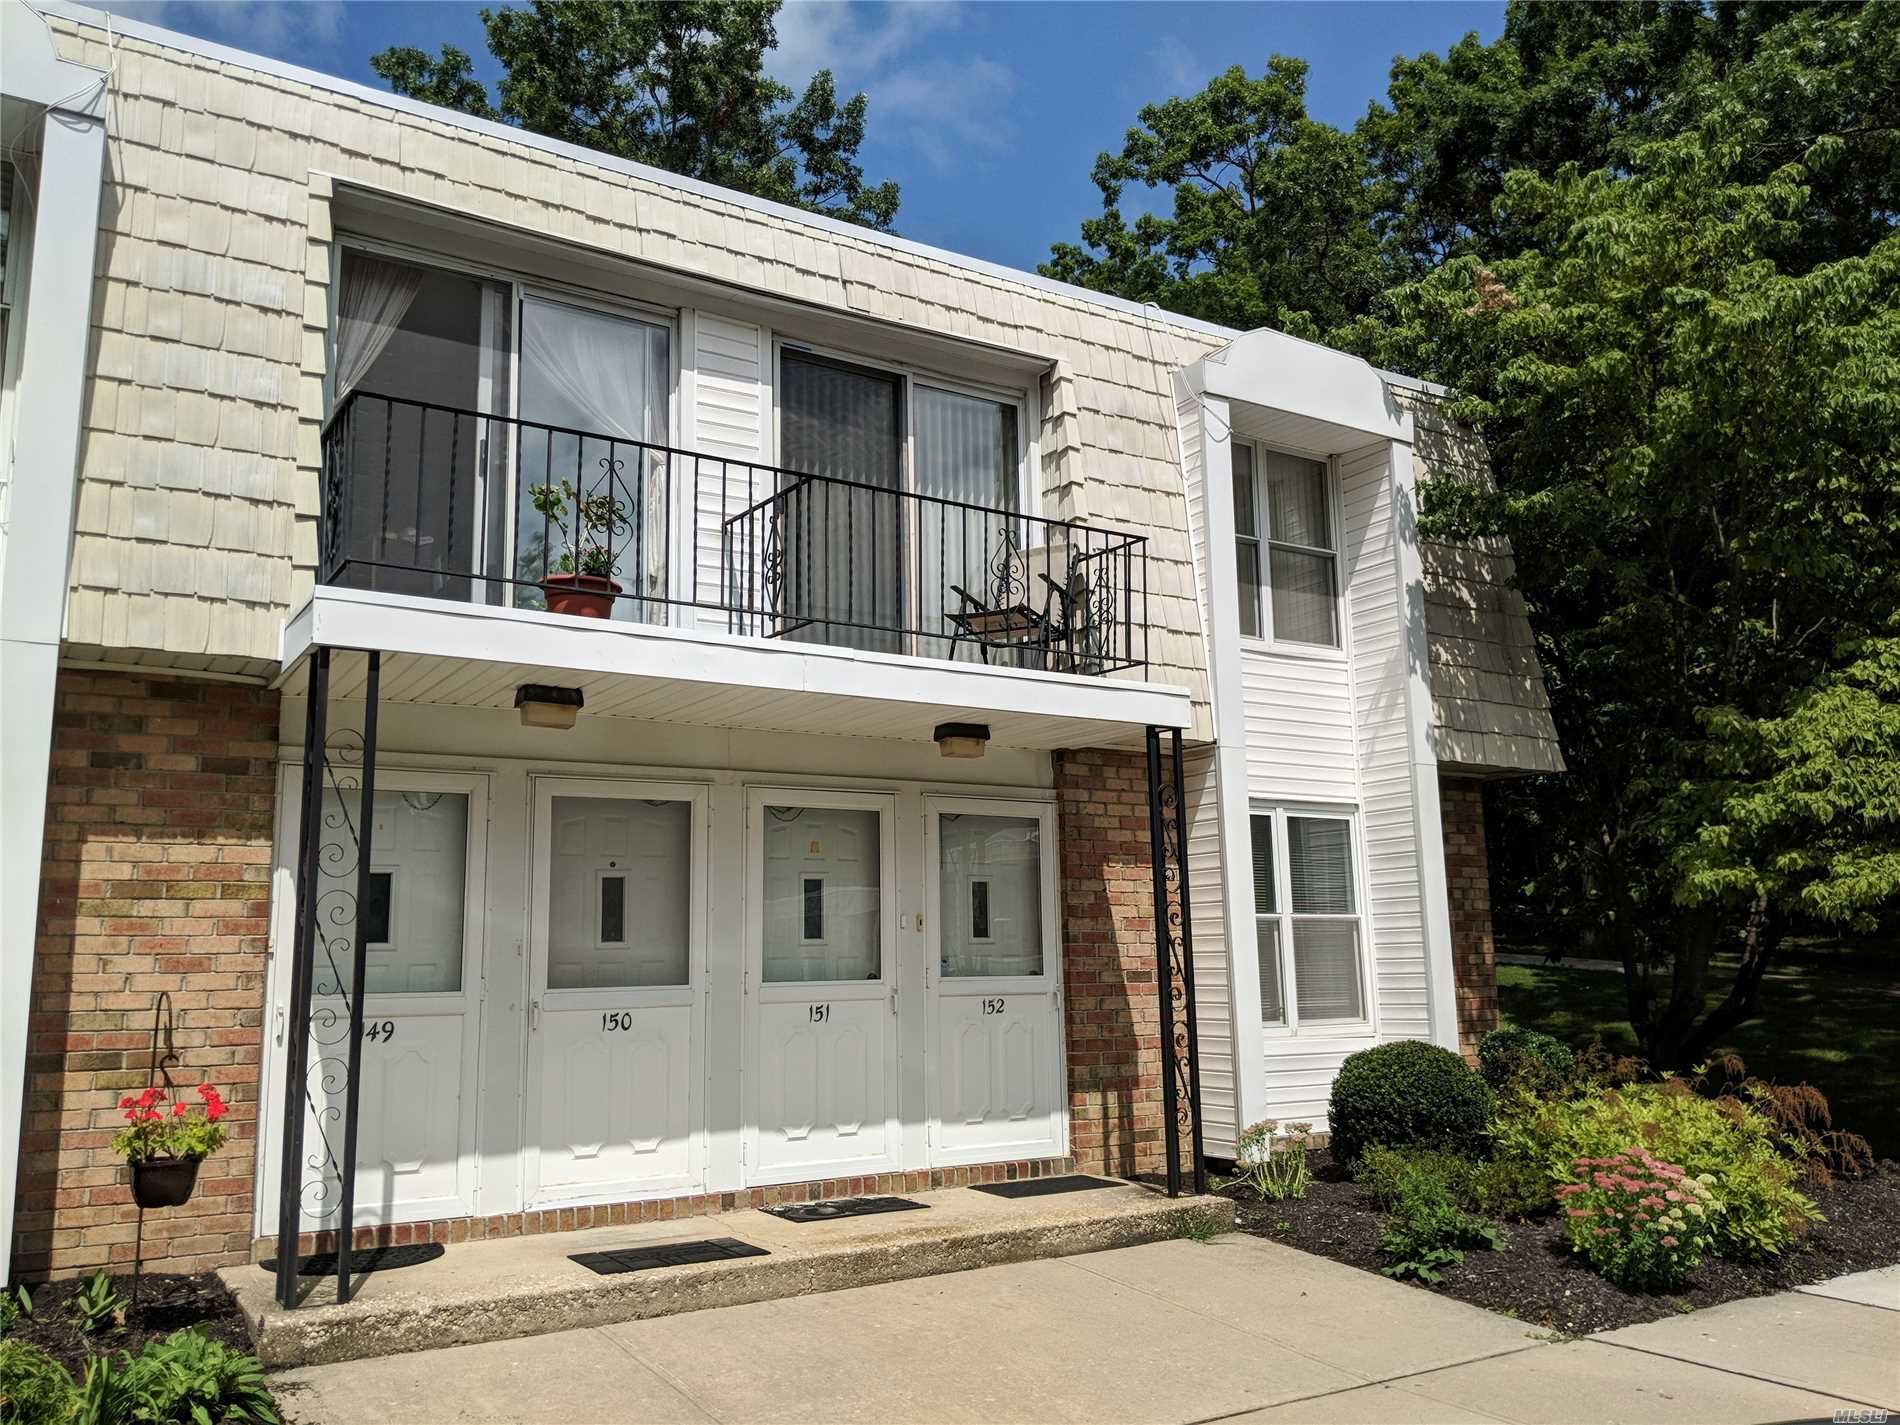 Lovely 1 Bedroom Lower End Unit W/Private Patio. Heat/A/C Unit 2/3 Yrs Old. Common Charges Include: Taxes, Gas Heat, Water, Garbage And Snow Removal. No Pets. Must Be Owner Occupied. 650+ Credit Score, $40, 000 A Year Income. Sale May Be Subject To Term & Conditions Of An Offering Plan.